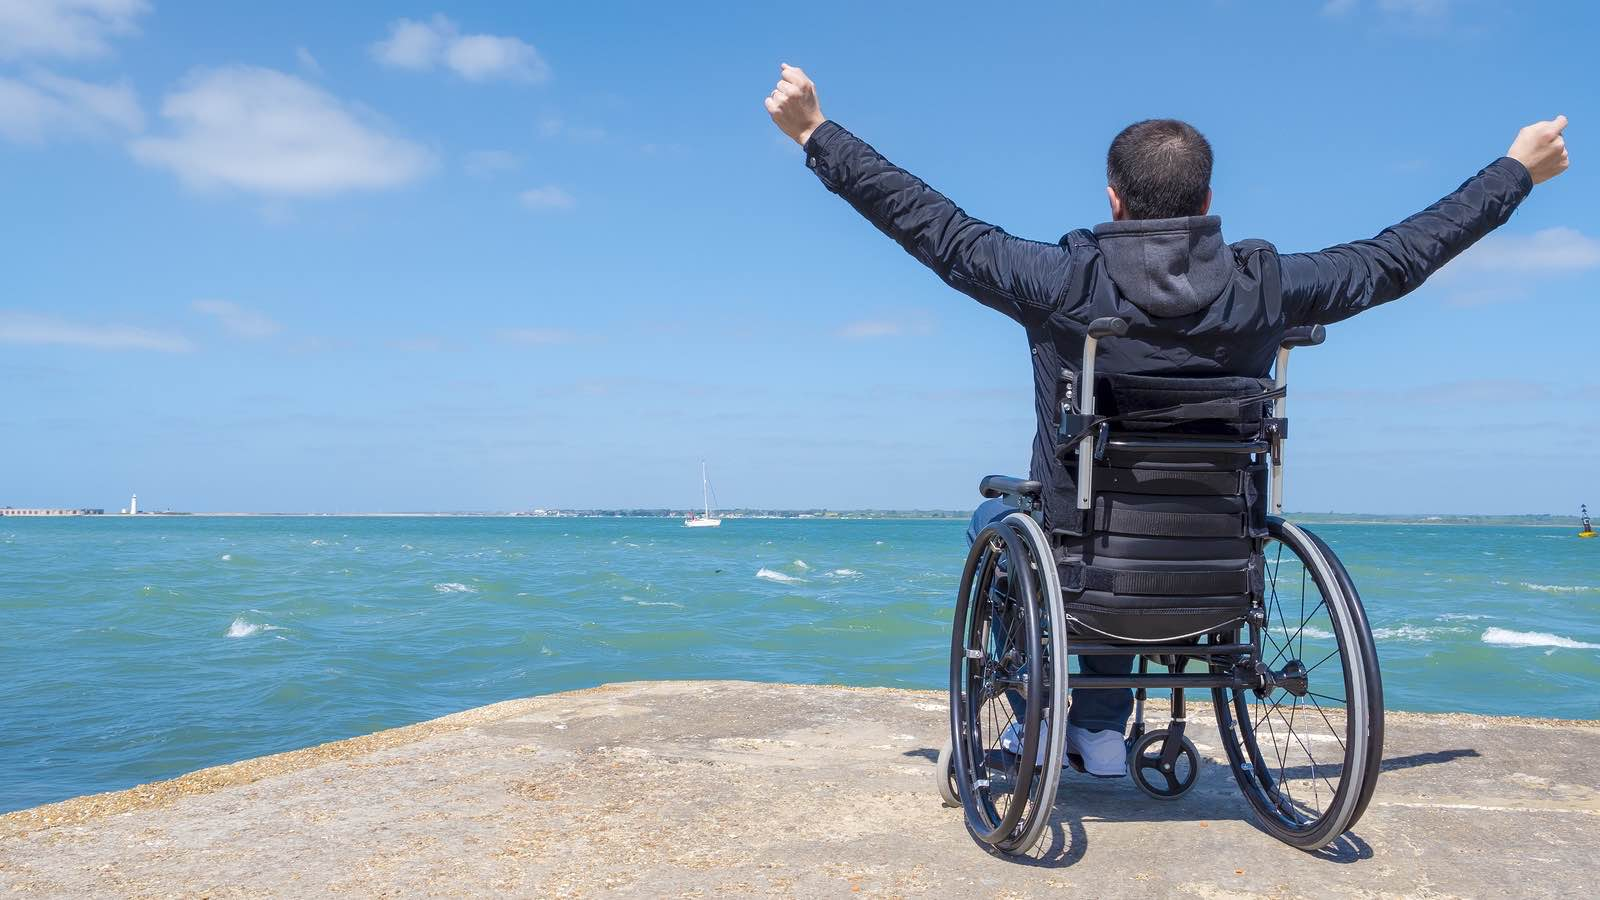 Wheelchair service provision programme - A comprehensive series of courses on the topic of wheelchair service provision